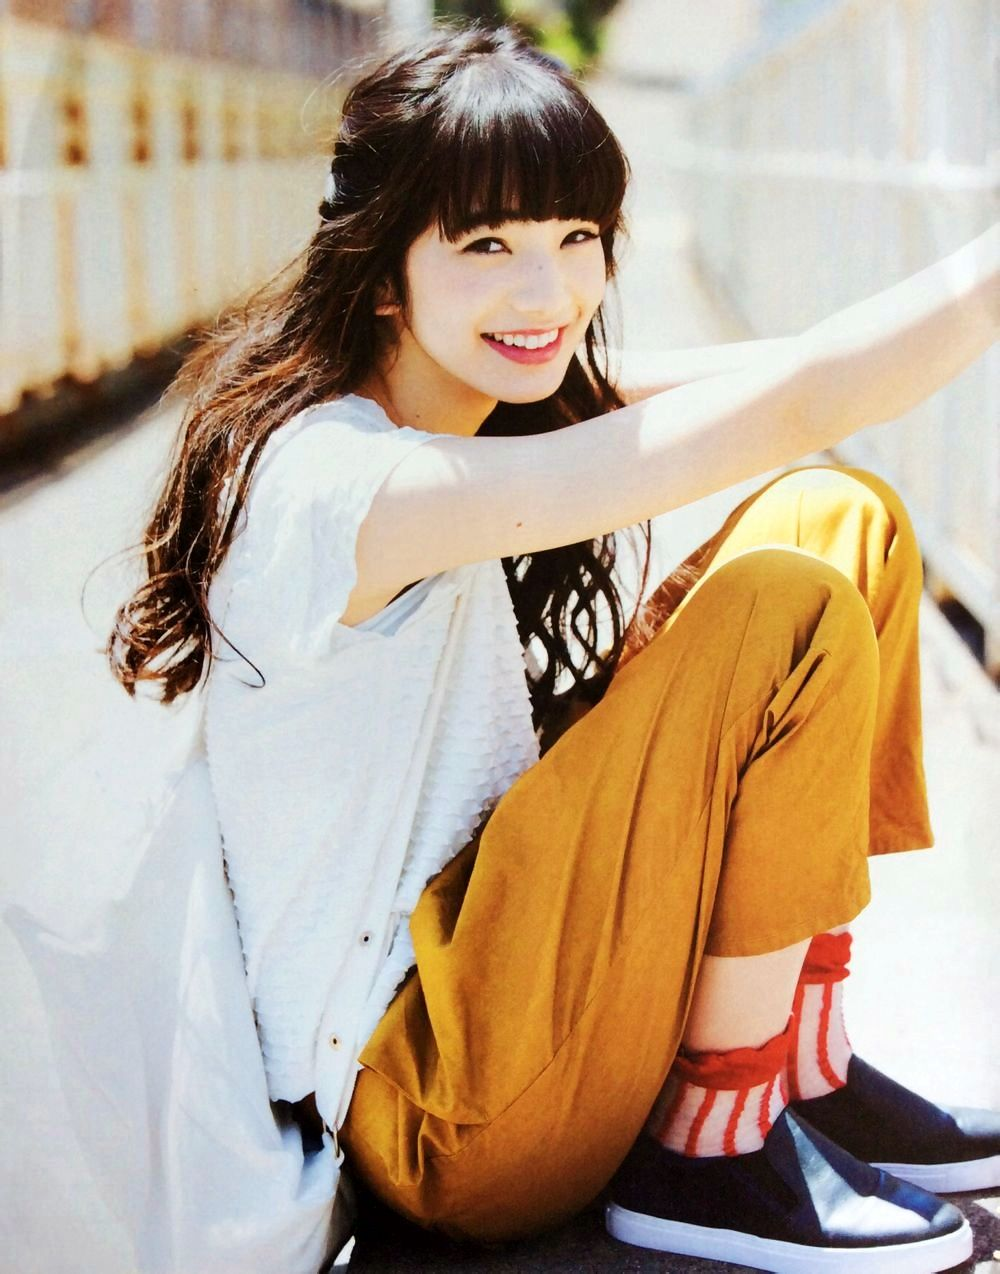 the,other,side,of,summer \u201c小松菜奈 \u201d